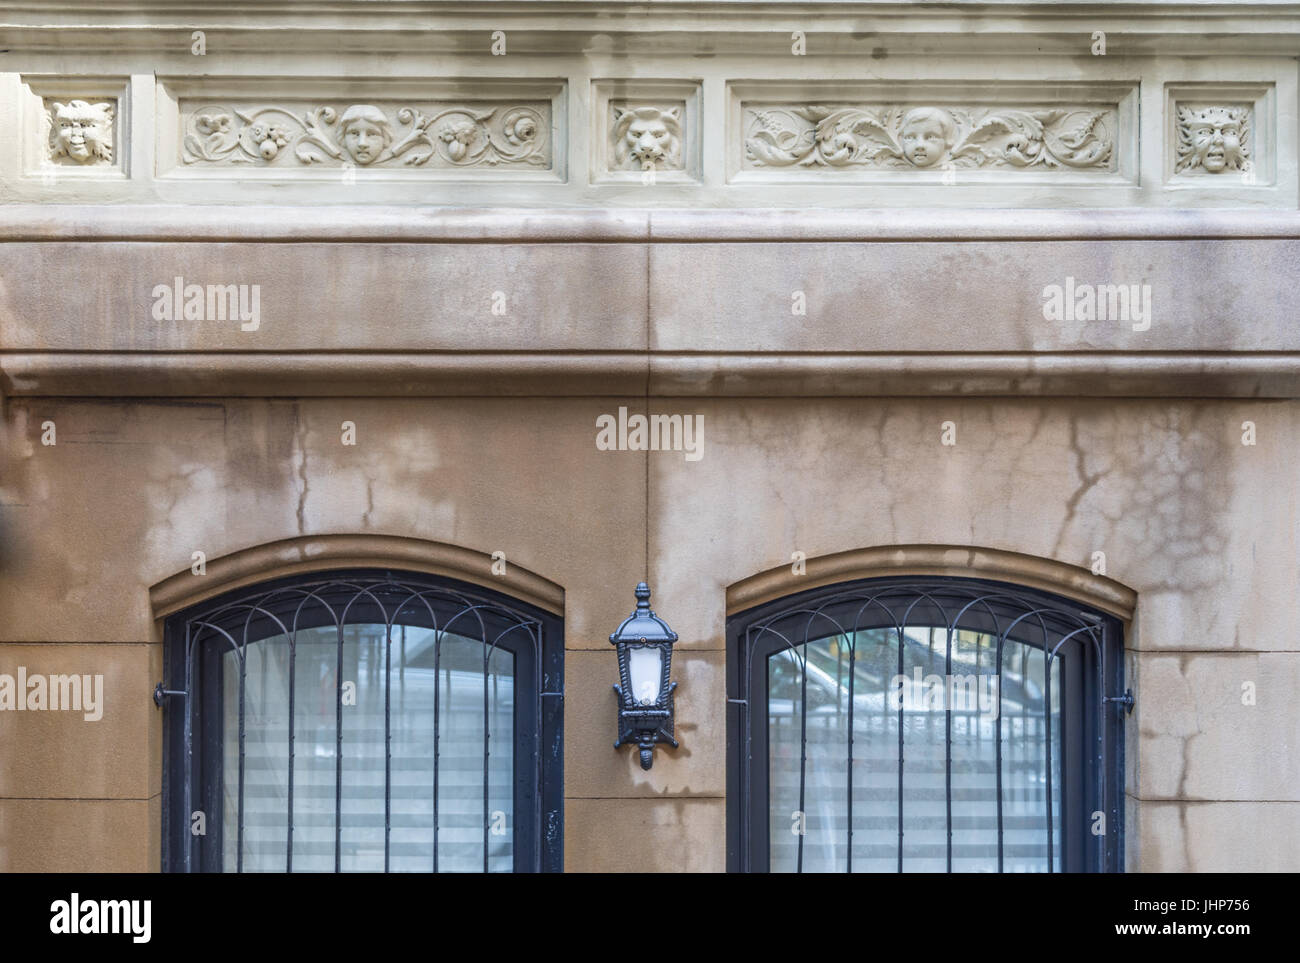 stone facade of a new york city building on the upper east side of manhattan - Stock Image